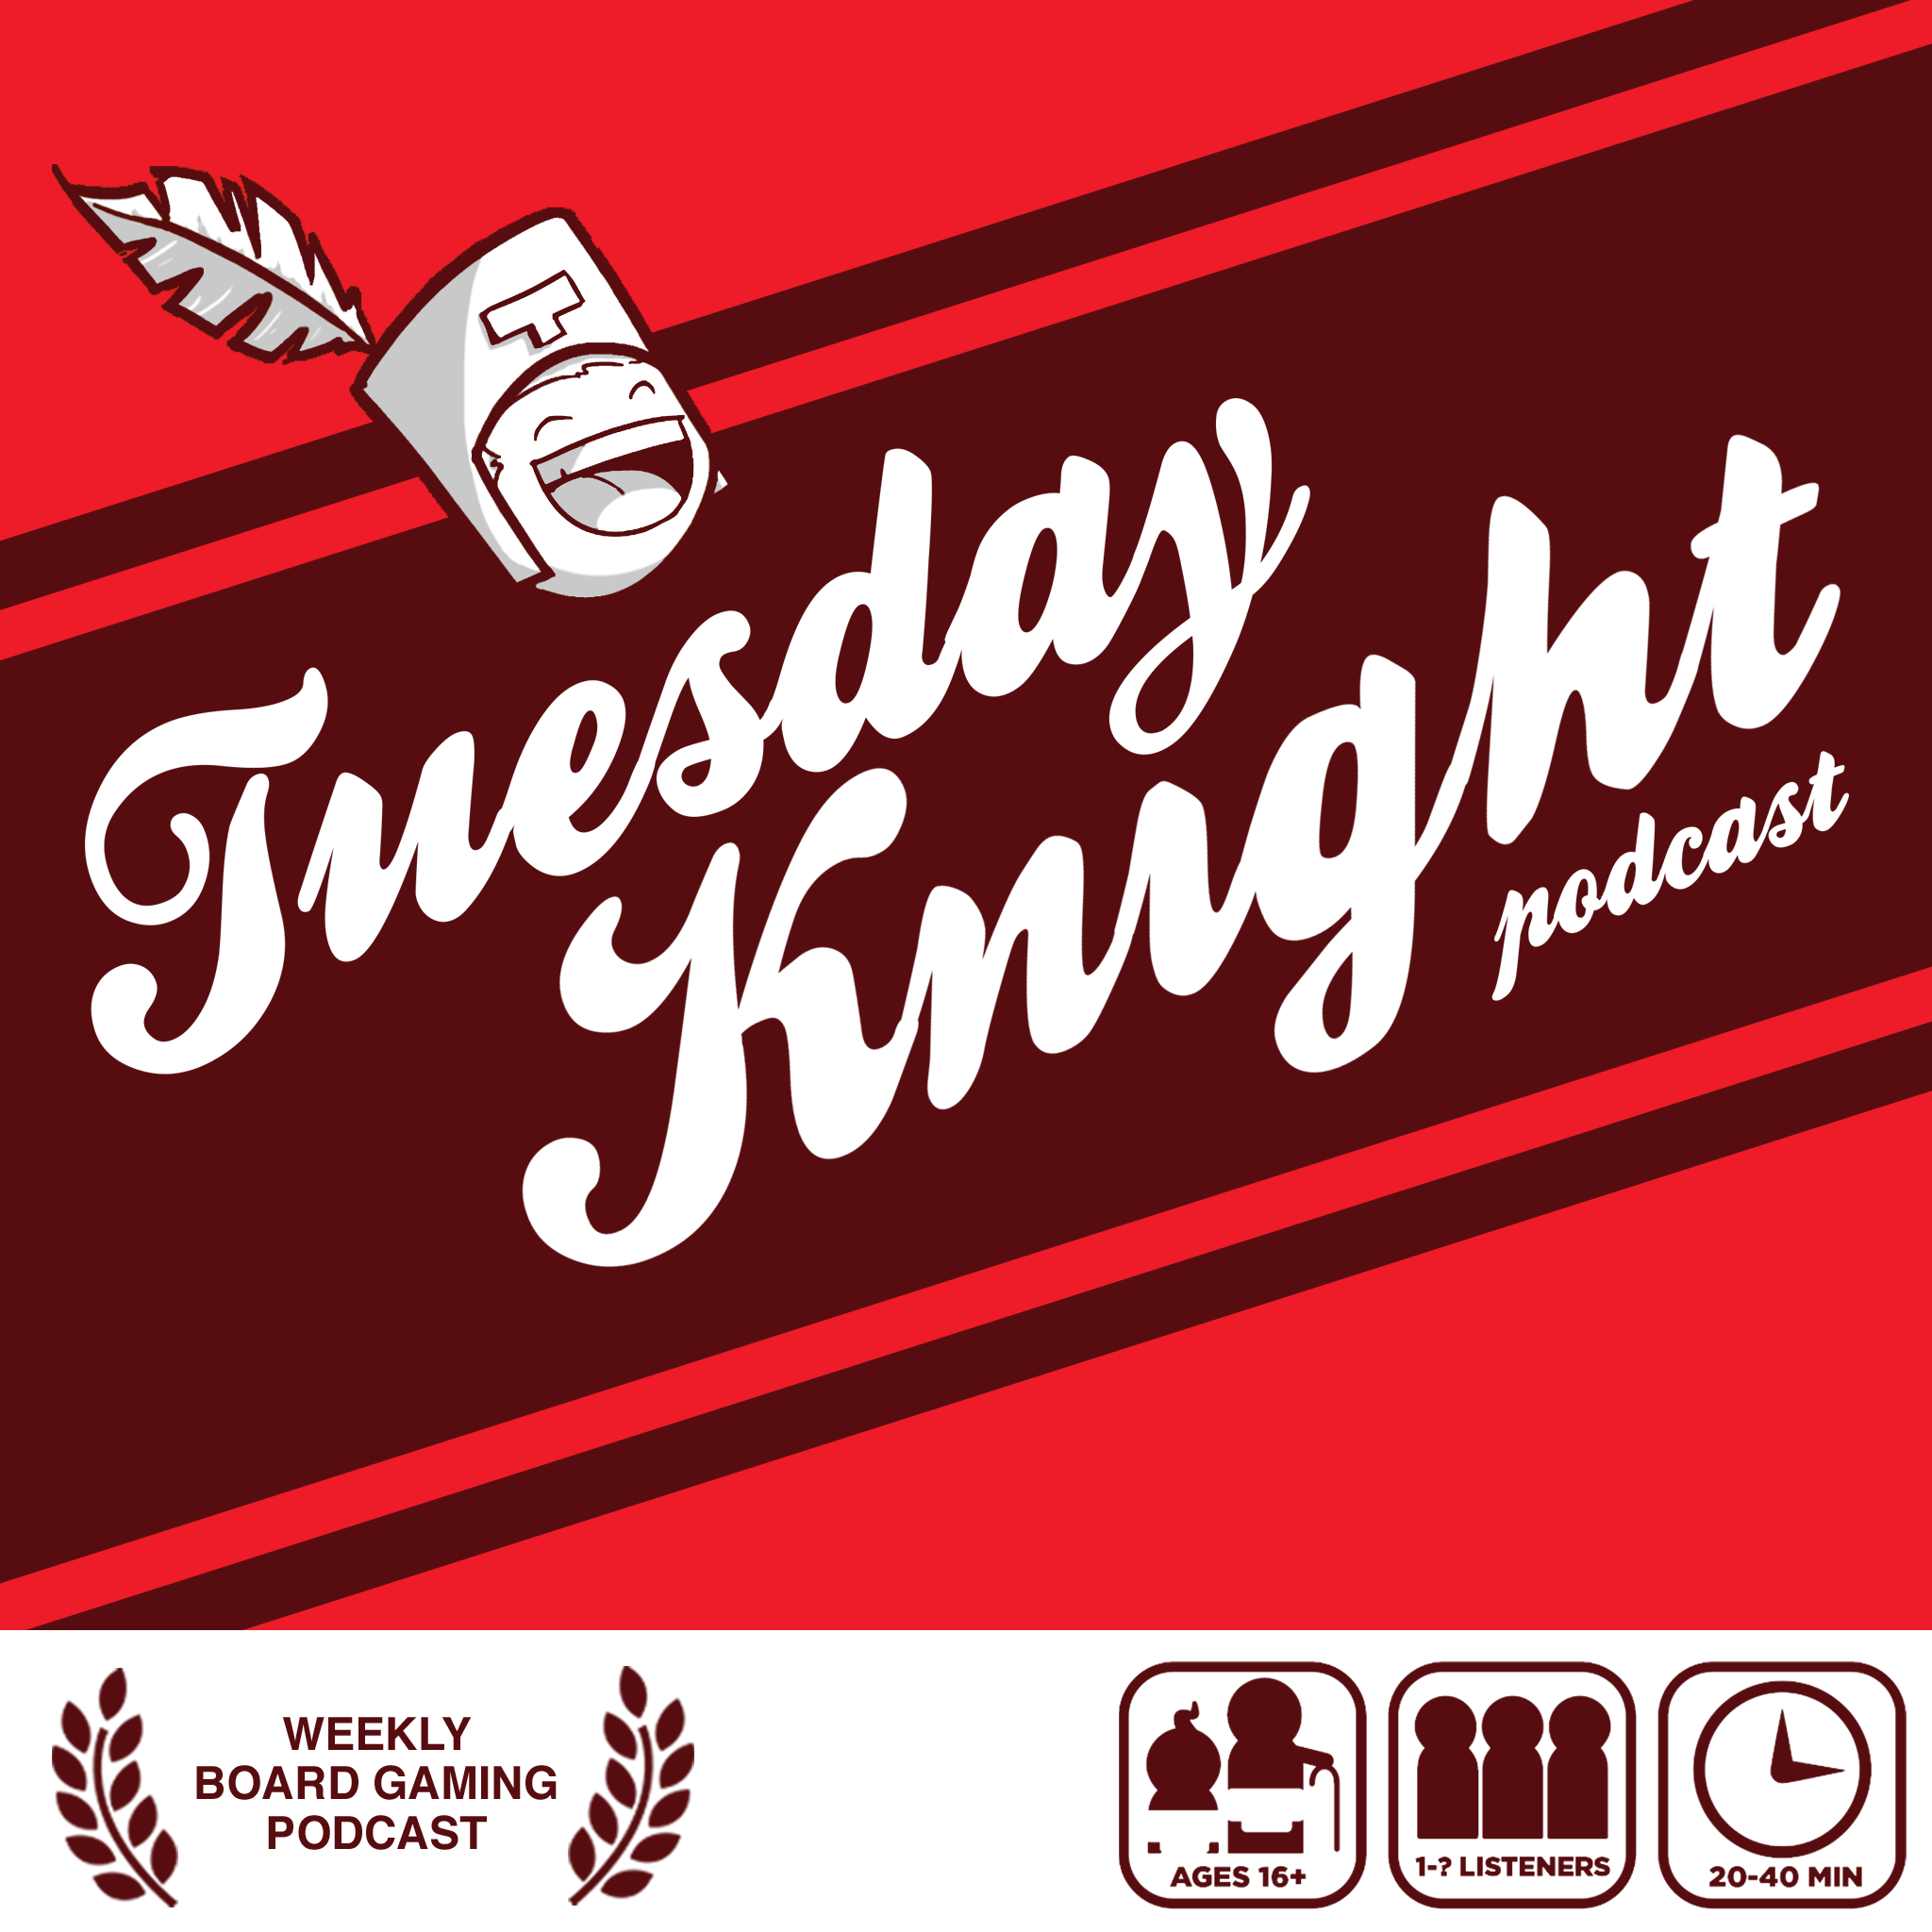 Tuesday Knight Podcast | All About Board Games